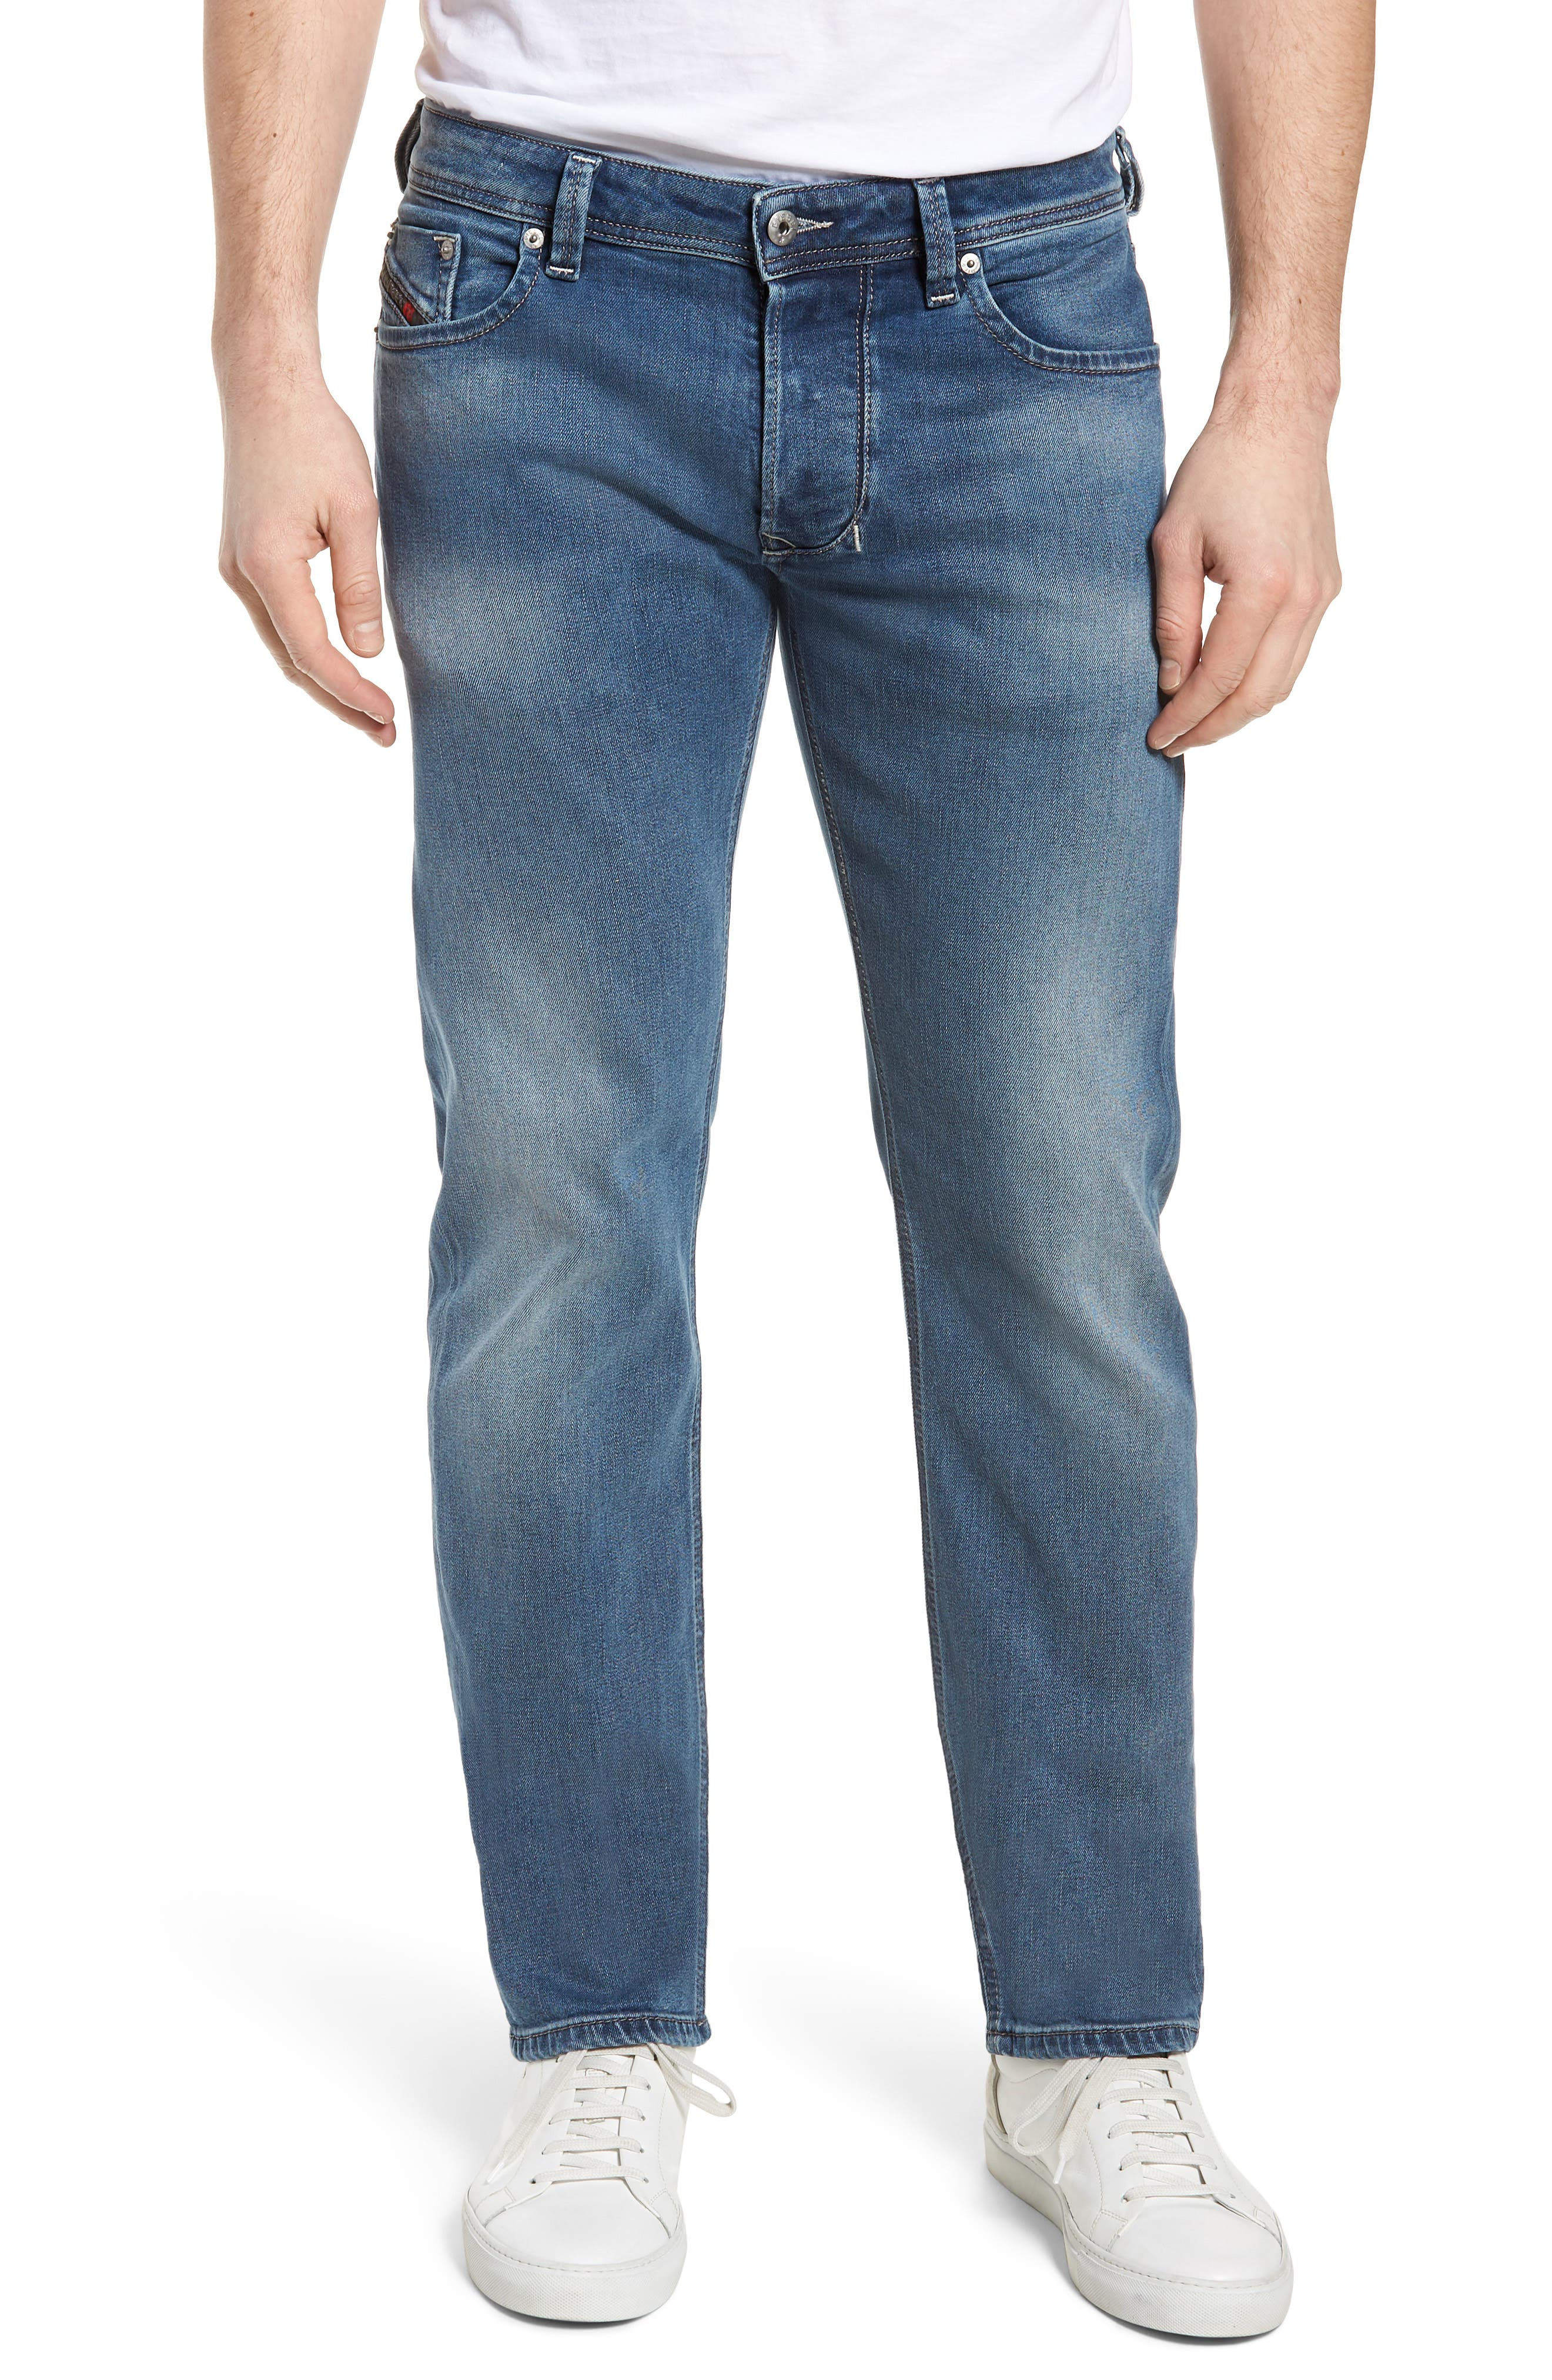 Larkee Relaxed Fit Jeans,                         Main,                         color, 900